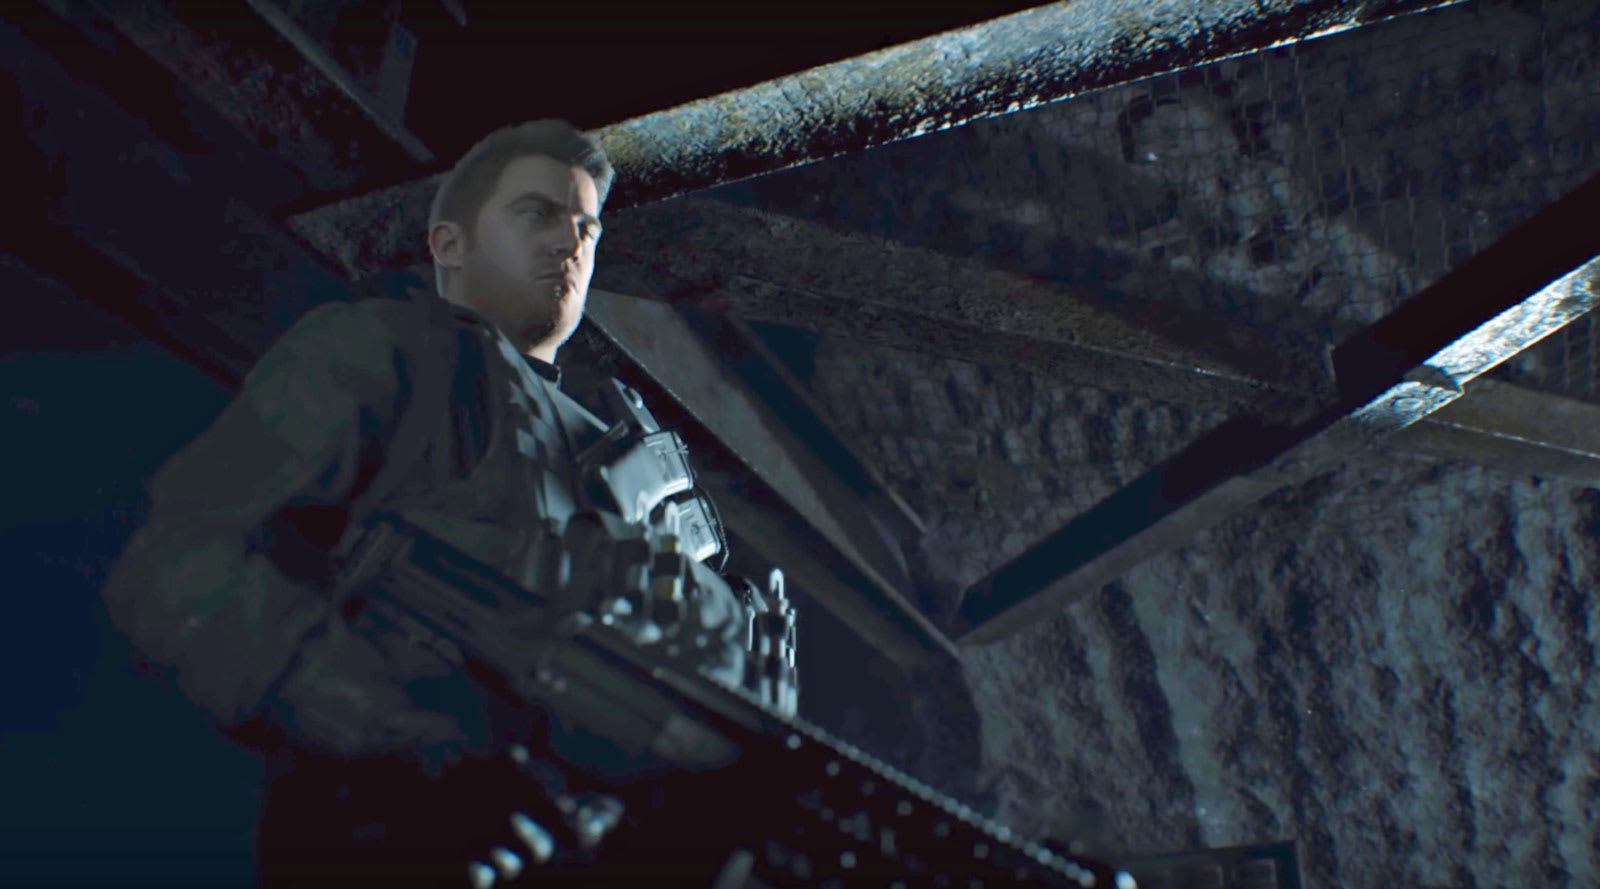 Resident Evil 7 Dlc Trailer Offers The First Look At Chris